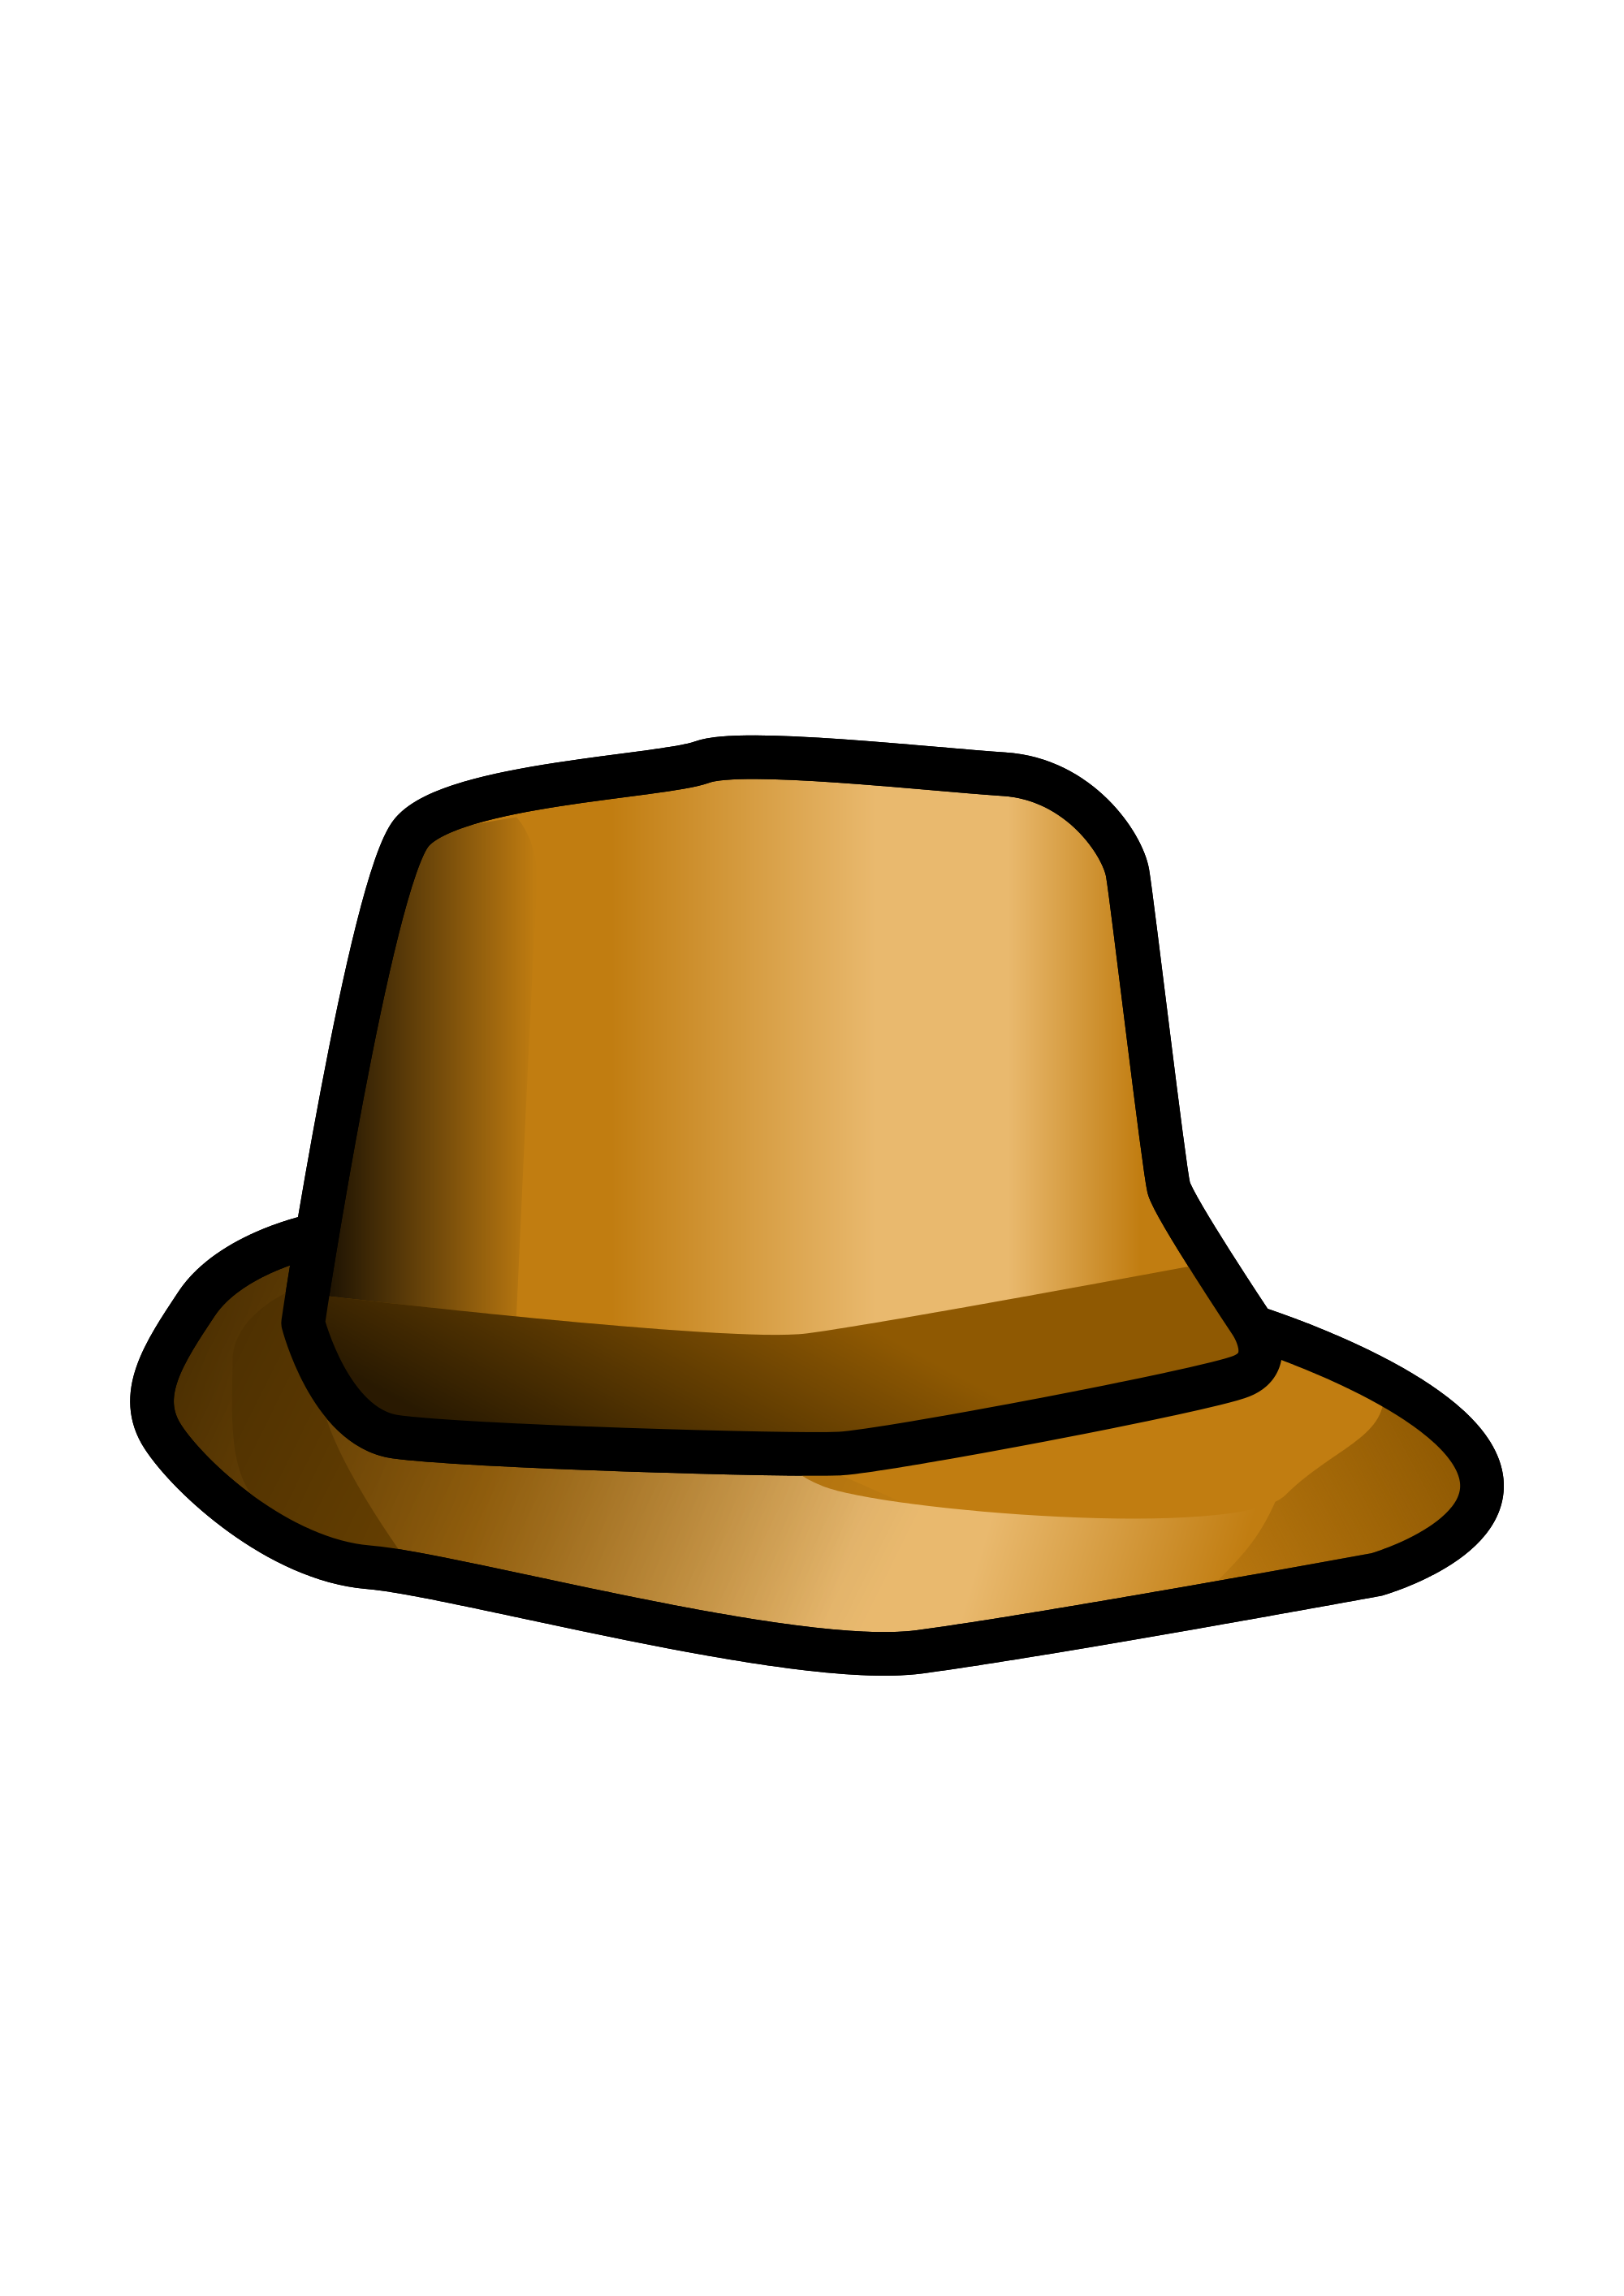 Hat svg inspector. File wikimedia commons open